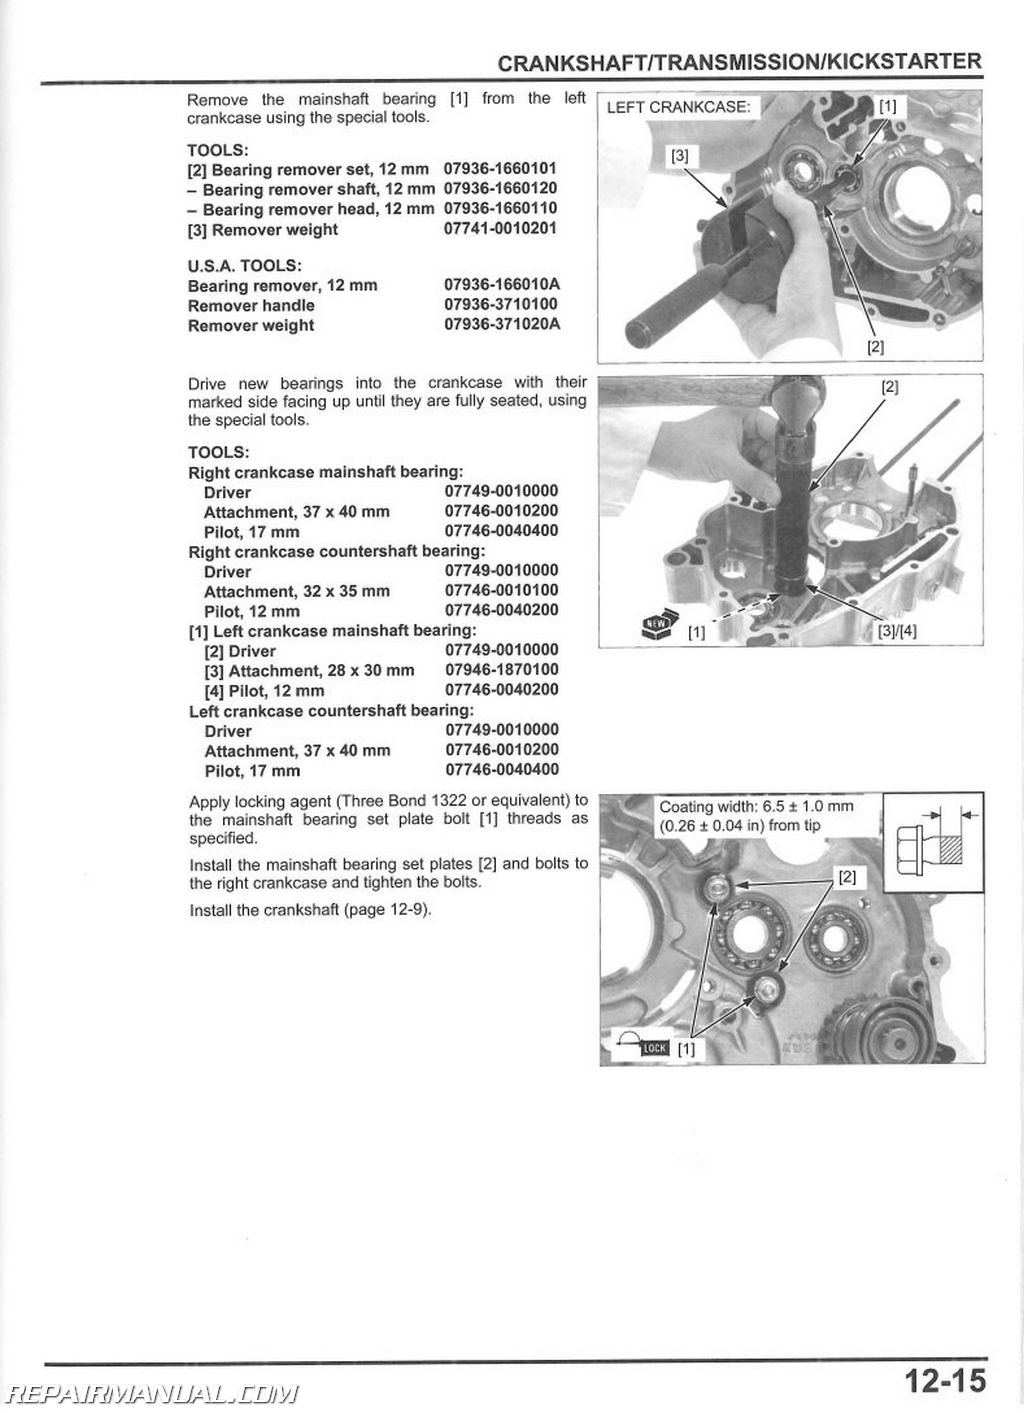 Honda Crf110f Service Manual